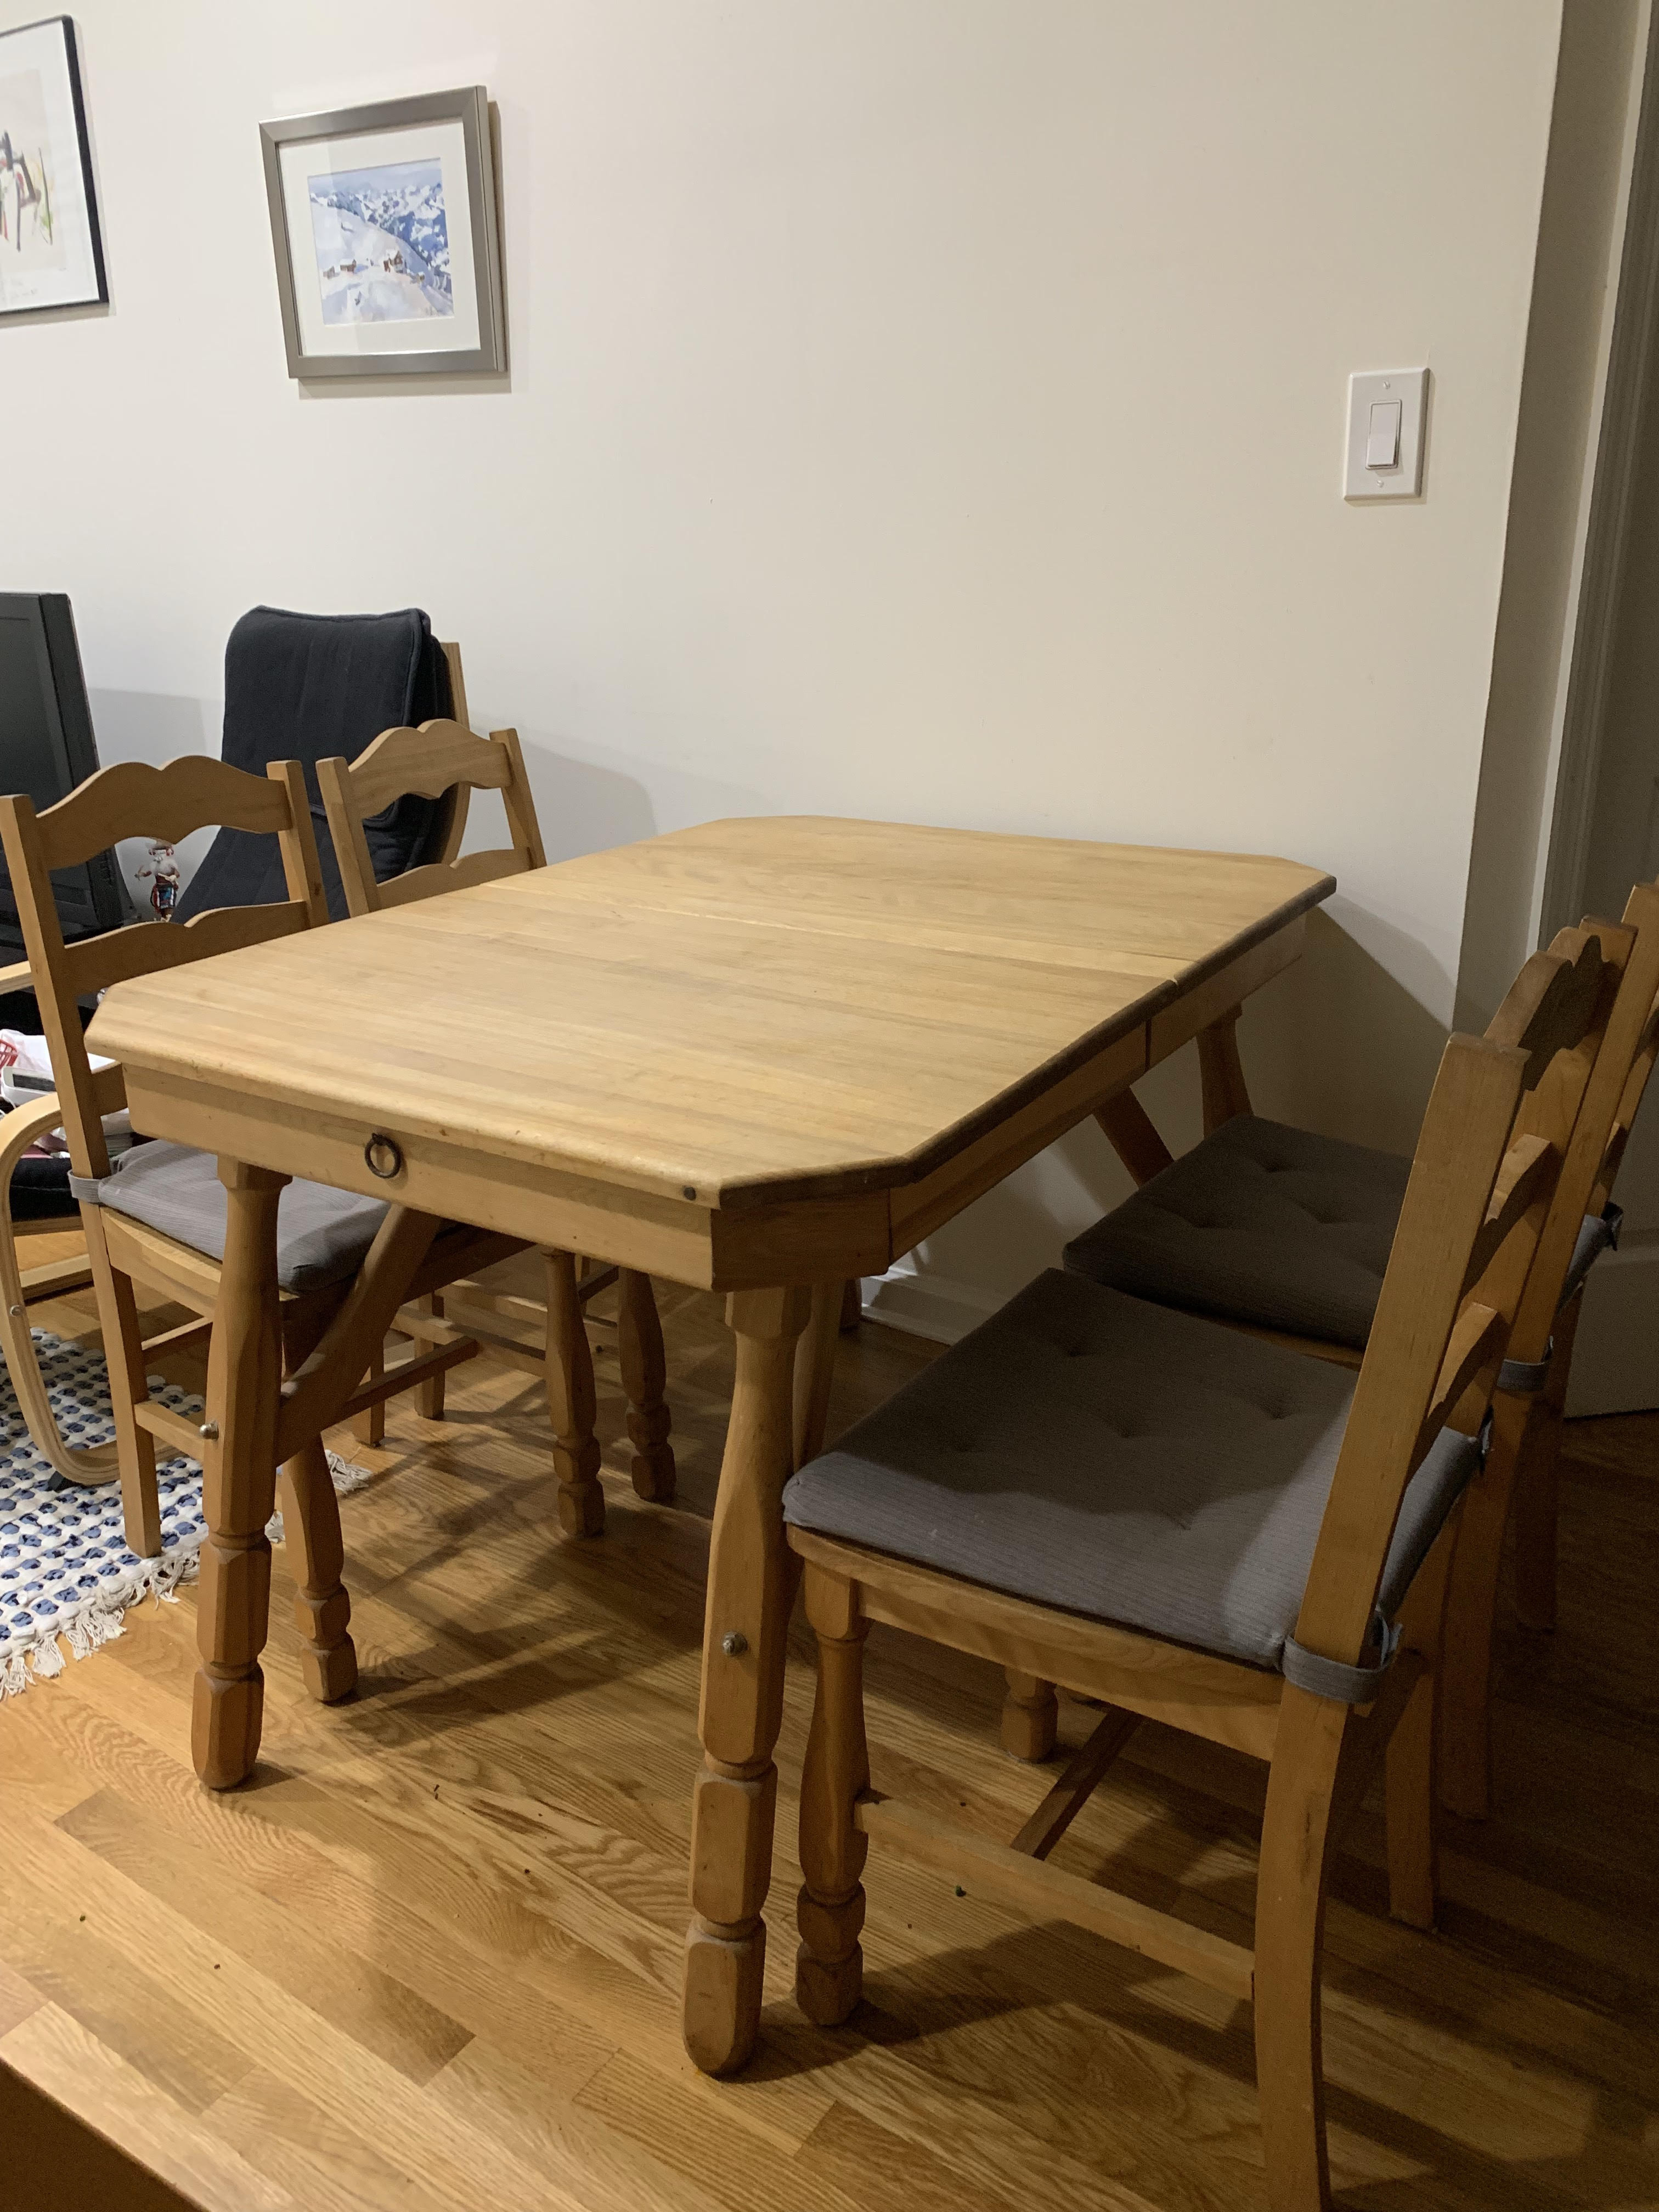 Antique Dining Table w/ 4 Chairs